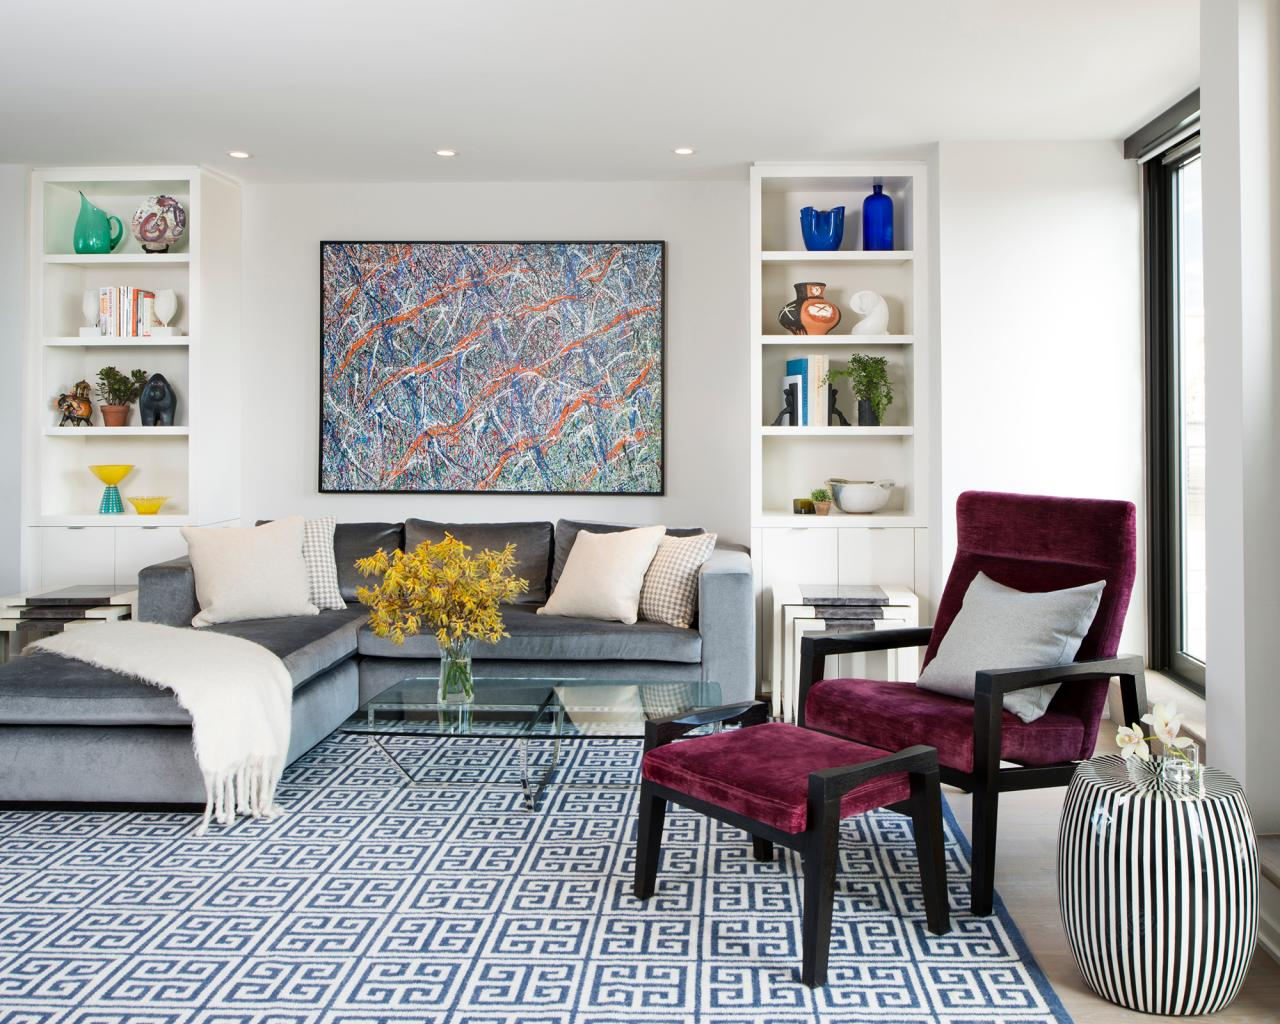 blue color living room. Mix patterns  12 Living Room Ideas for a Grey Sectional HGTV s Decorating